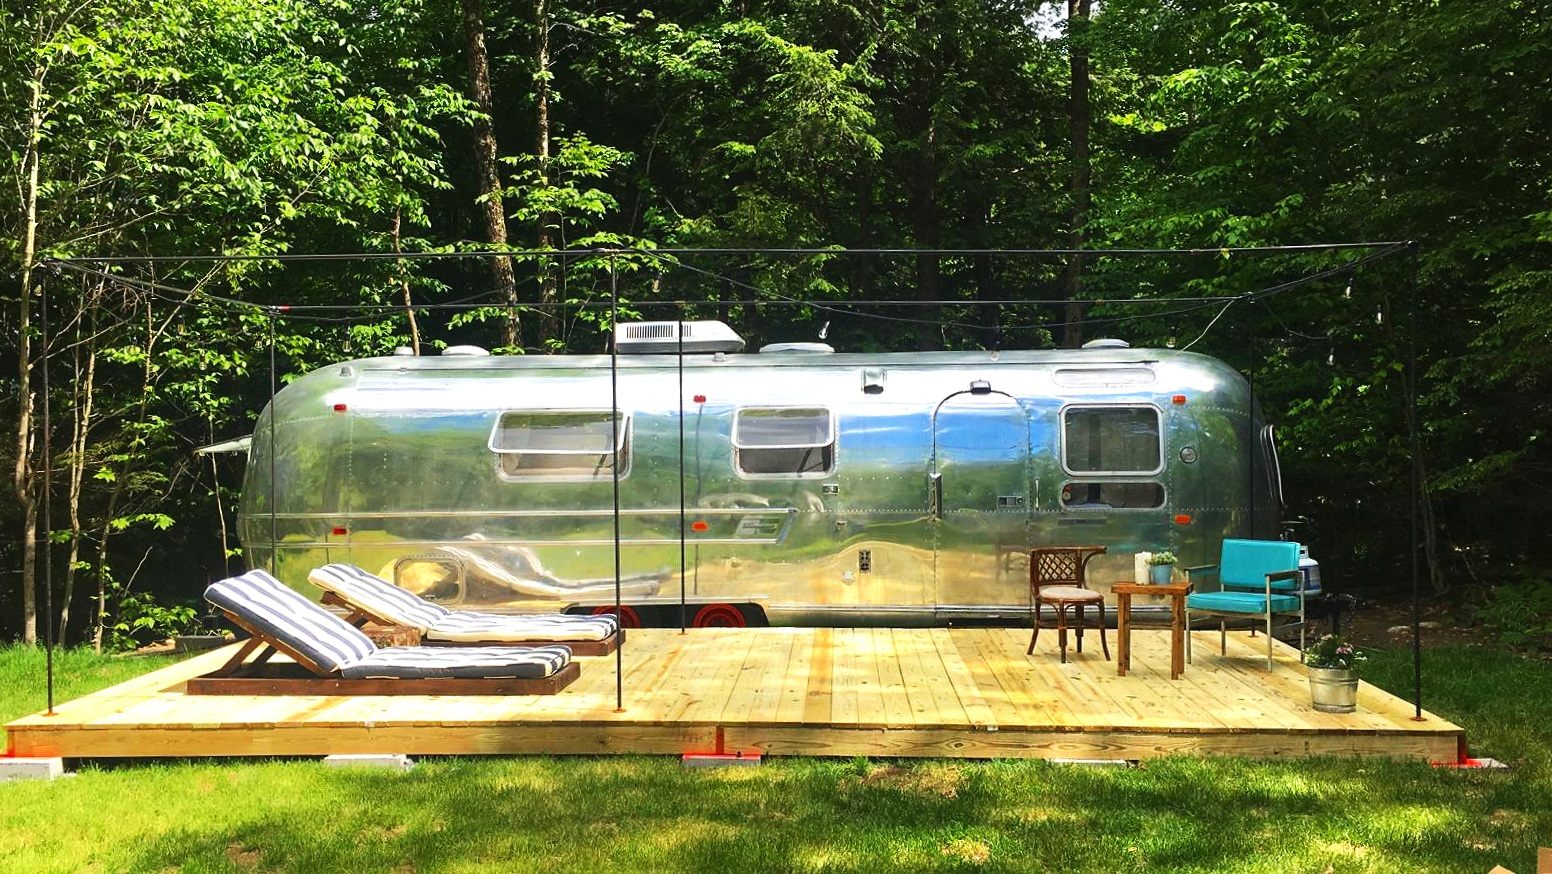 Bucket list item - stay the night in and sunbathe outside our vintage 1973 Airstream